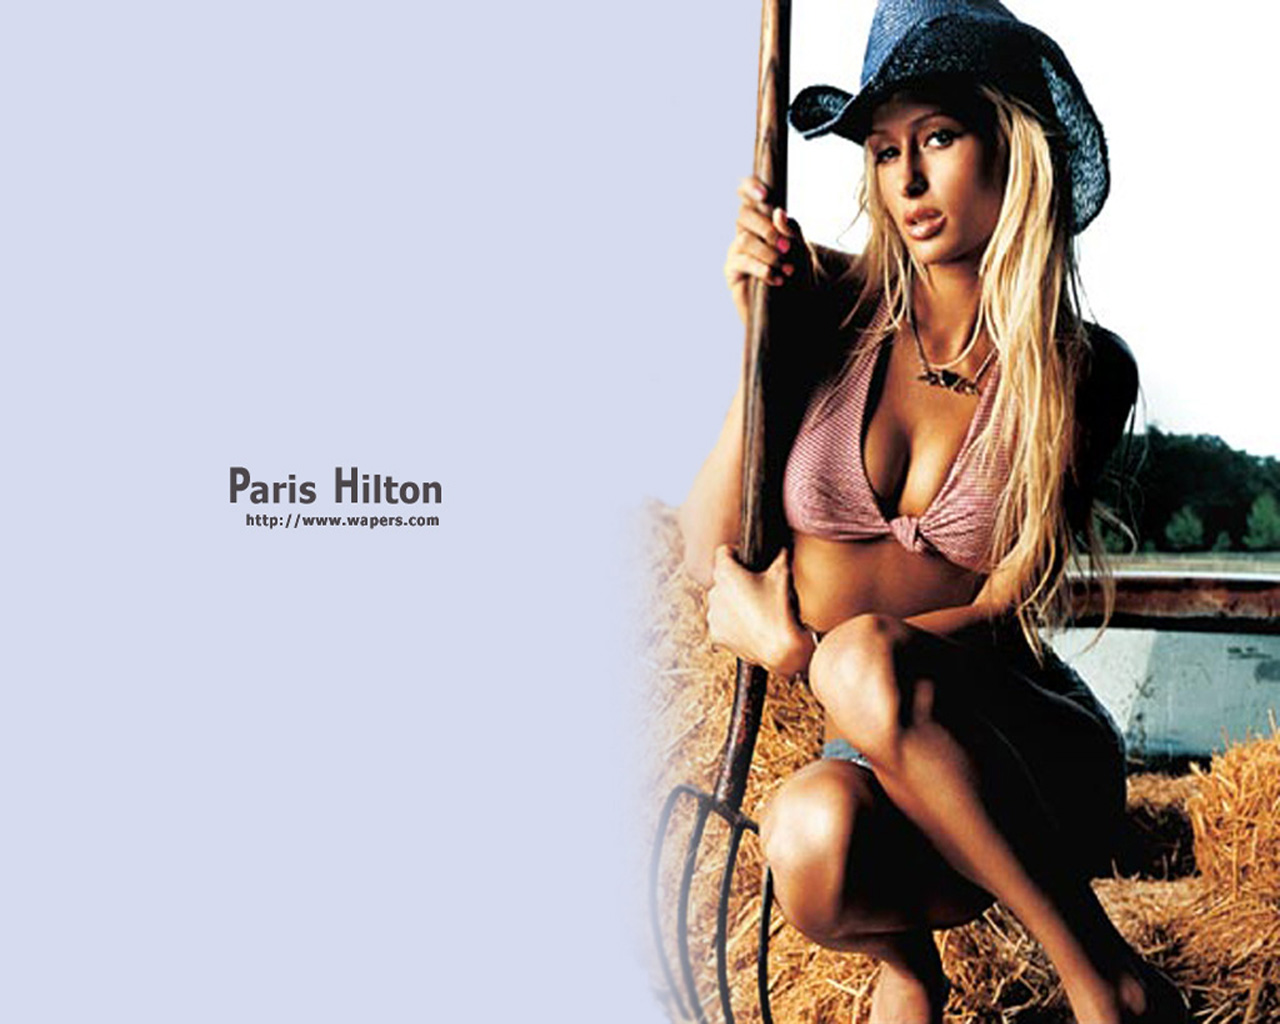 Wallpaper Paris Hilton farm